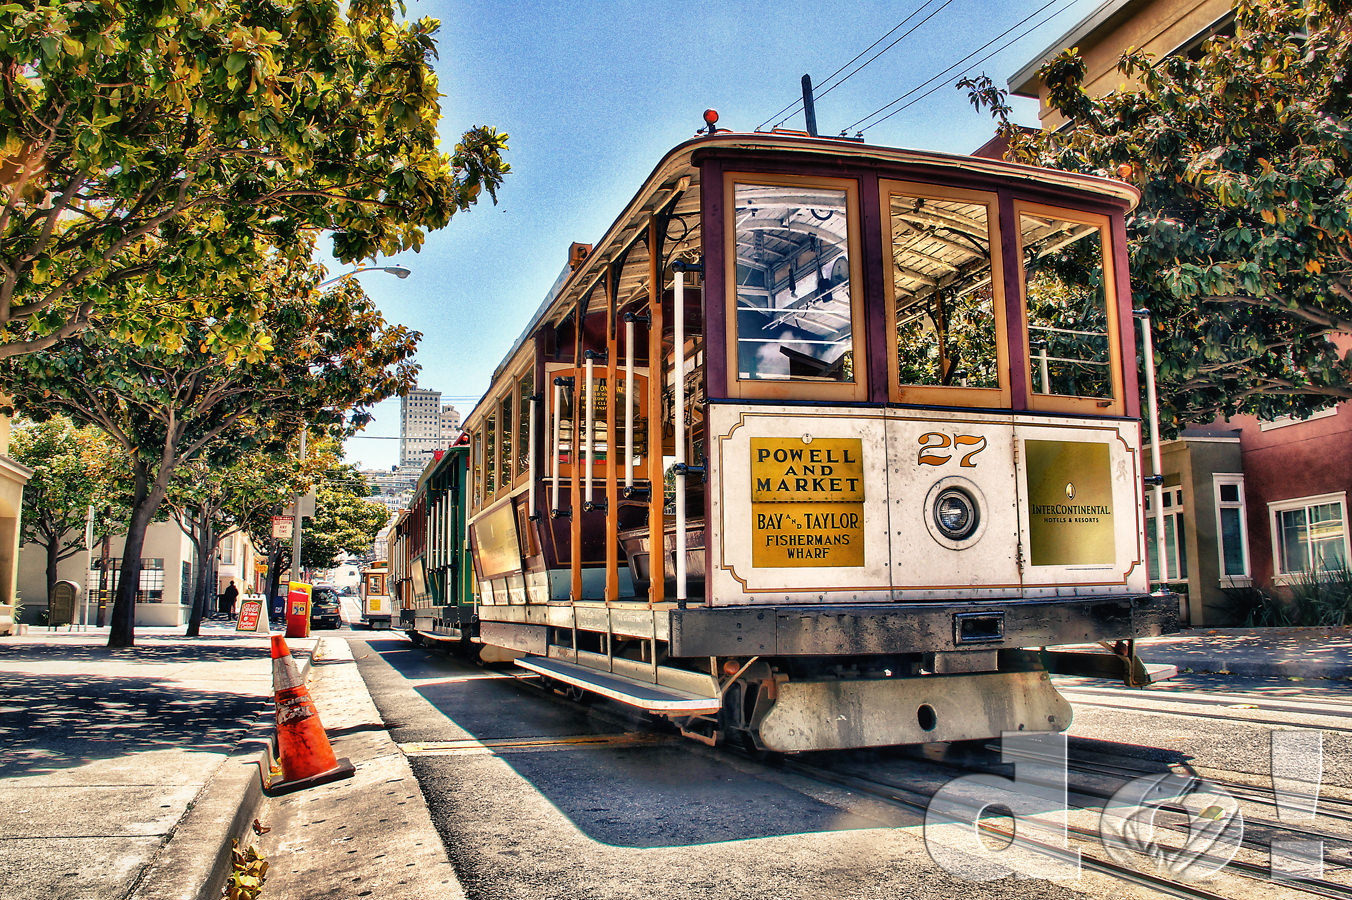 Leave Your Heart in San Francisco. San Francisco is an amazingly historical, world famous city with an unlimited amount of fun things to do, beautiful landmarks to see and delicious food to indulge in.